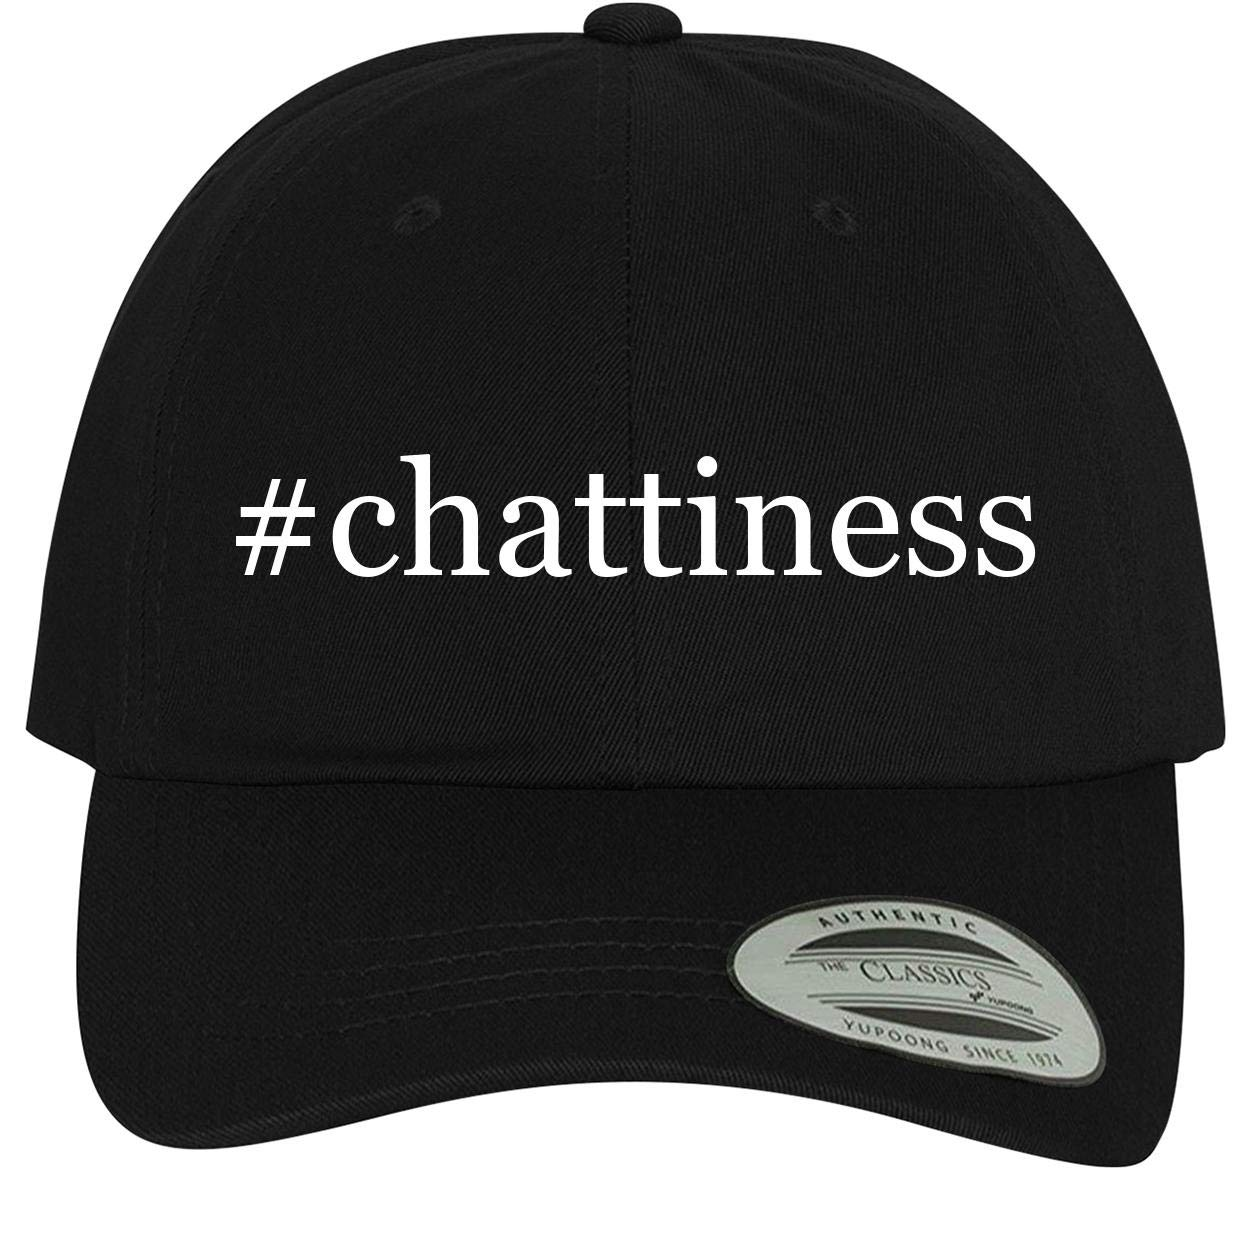 BH Cool Designs #Chattiness Comfortable Dad Hat Baseball Cap